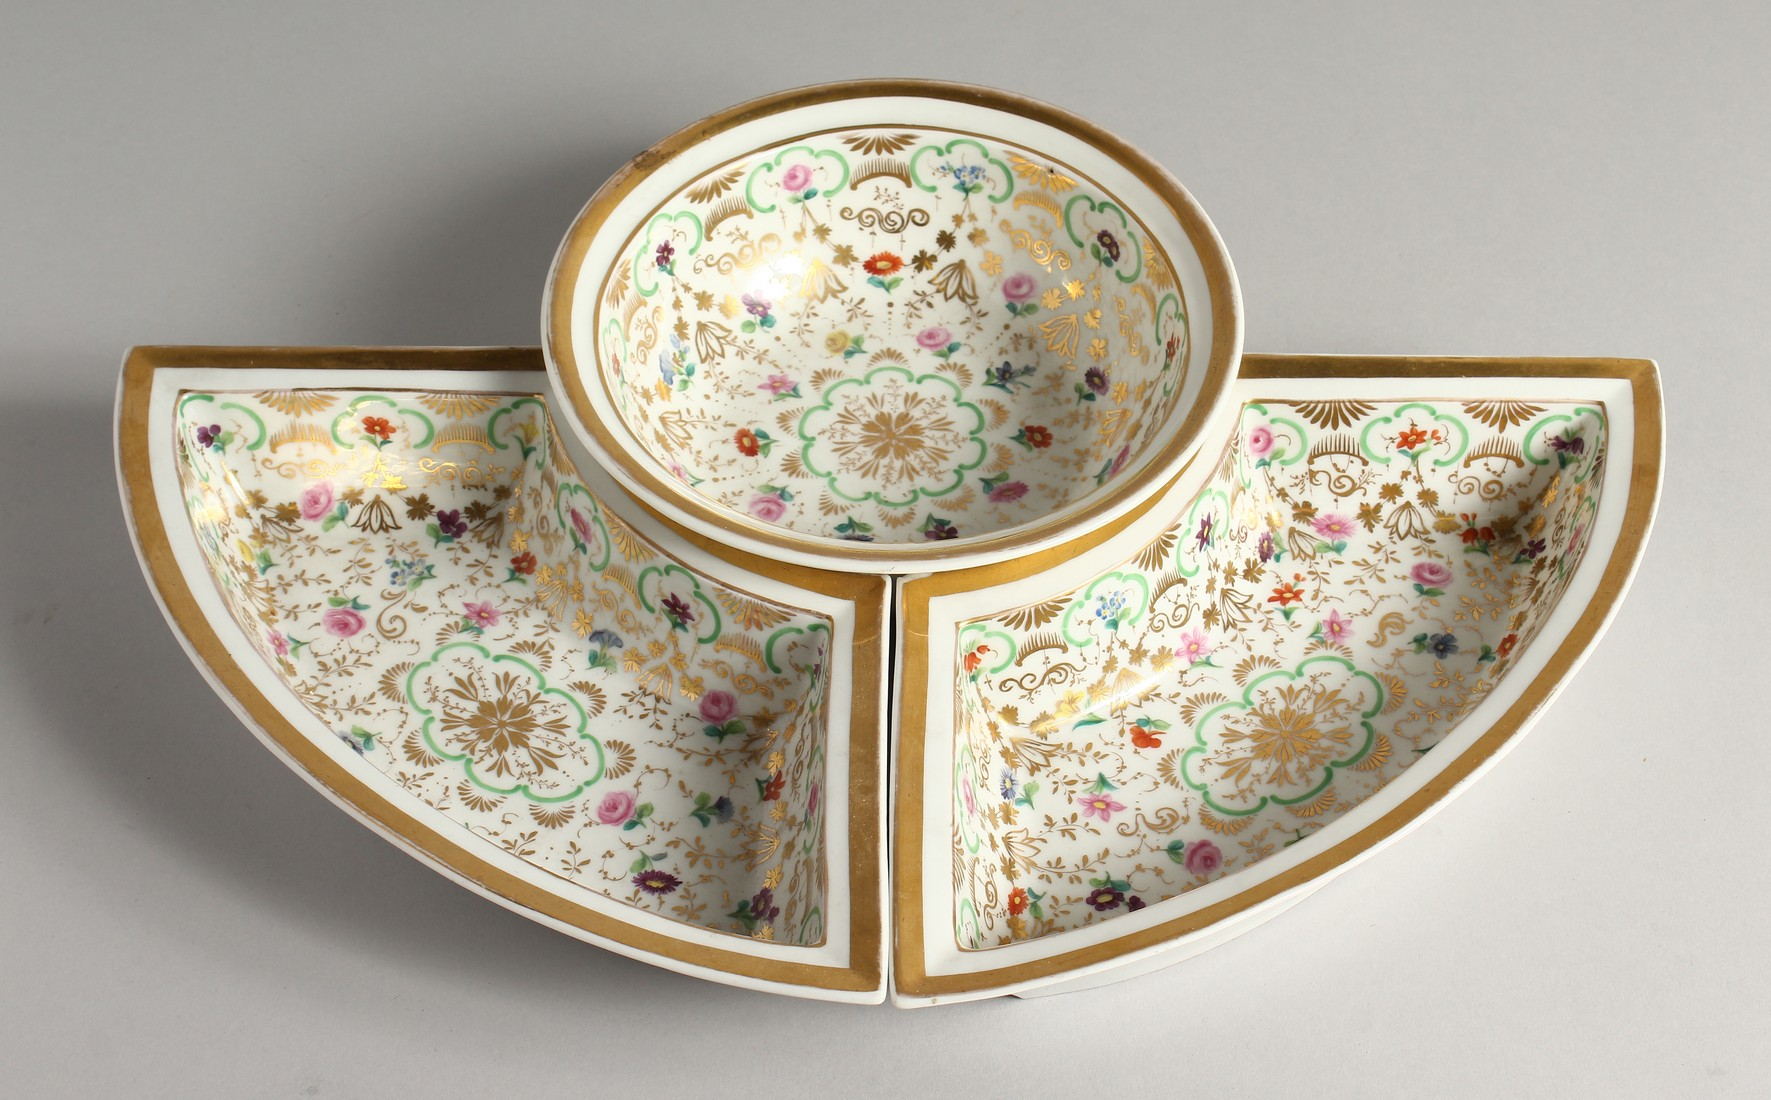 A K. P. M. PORCELAIN CIRCULAR BOWL with gilt decoration and painted with flowers. 7ins diameter